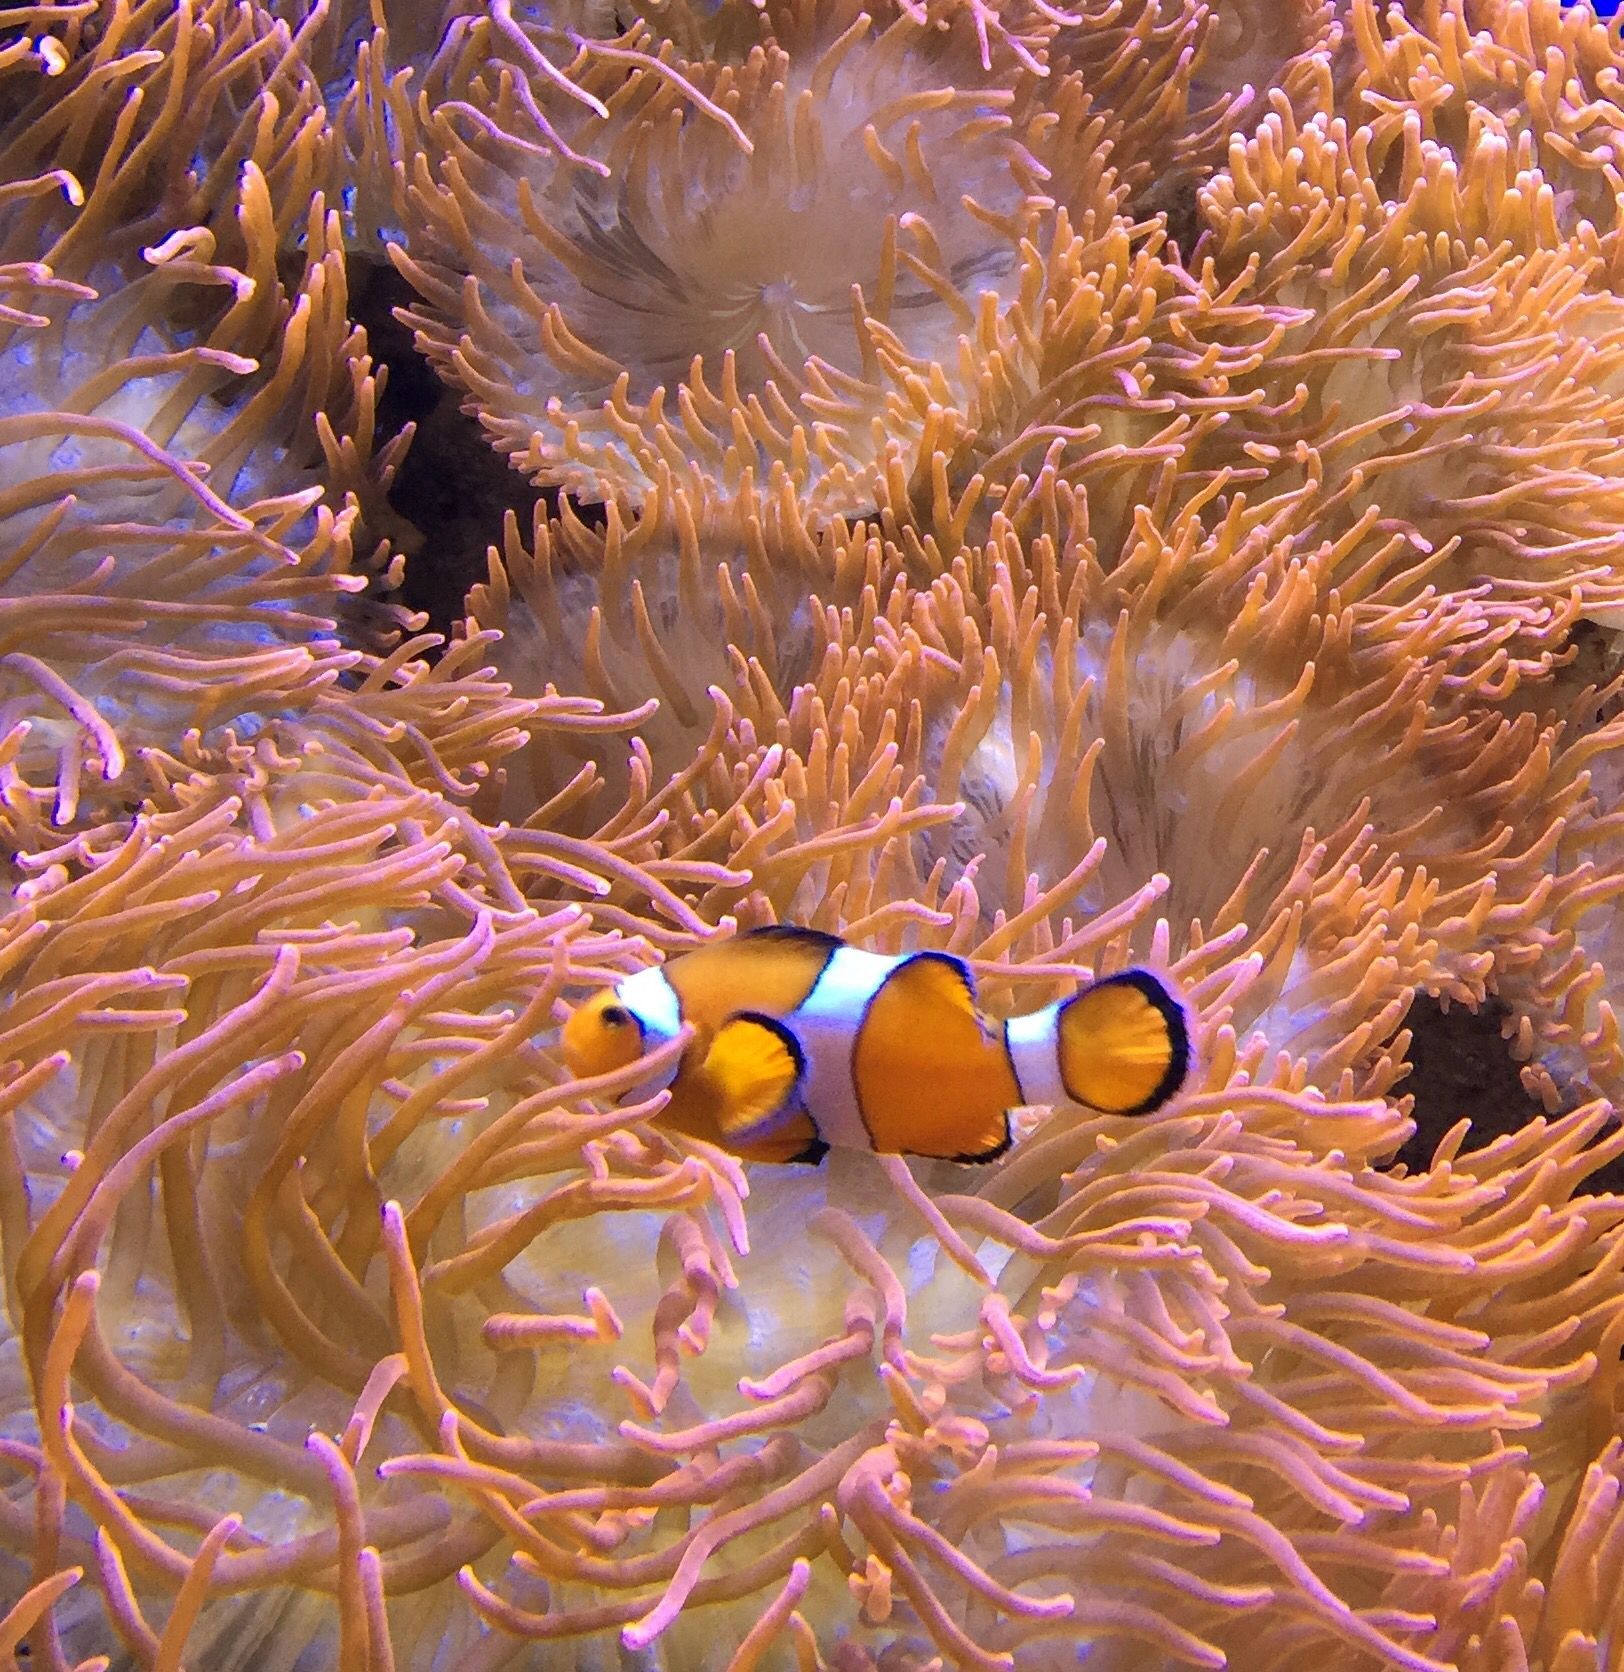 Clownfish nestled in sea anemone - Photo by CS Lent